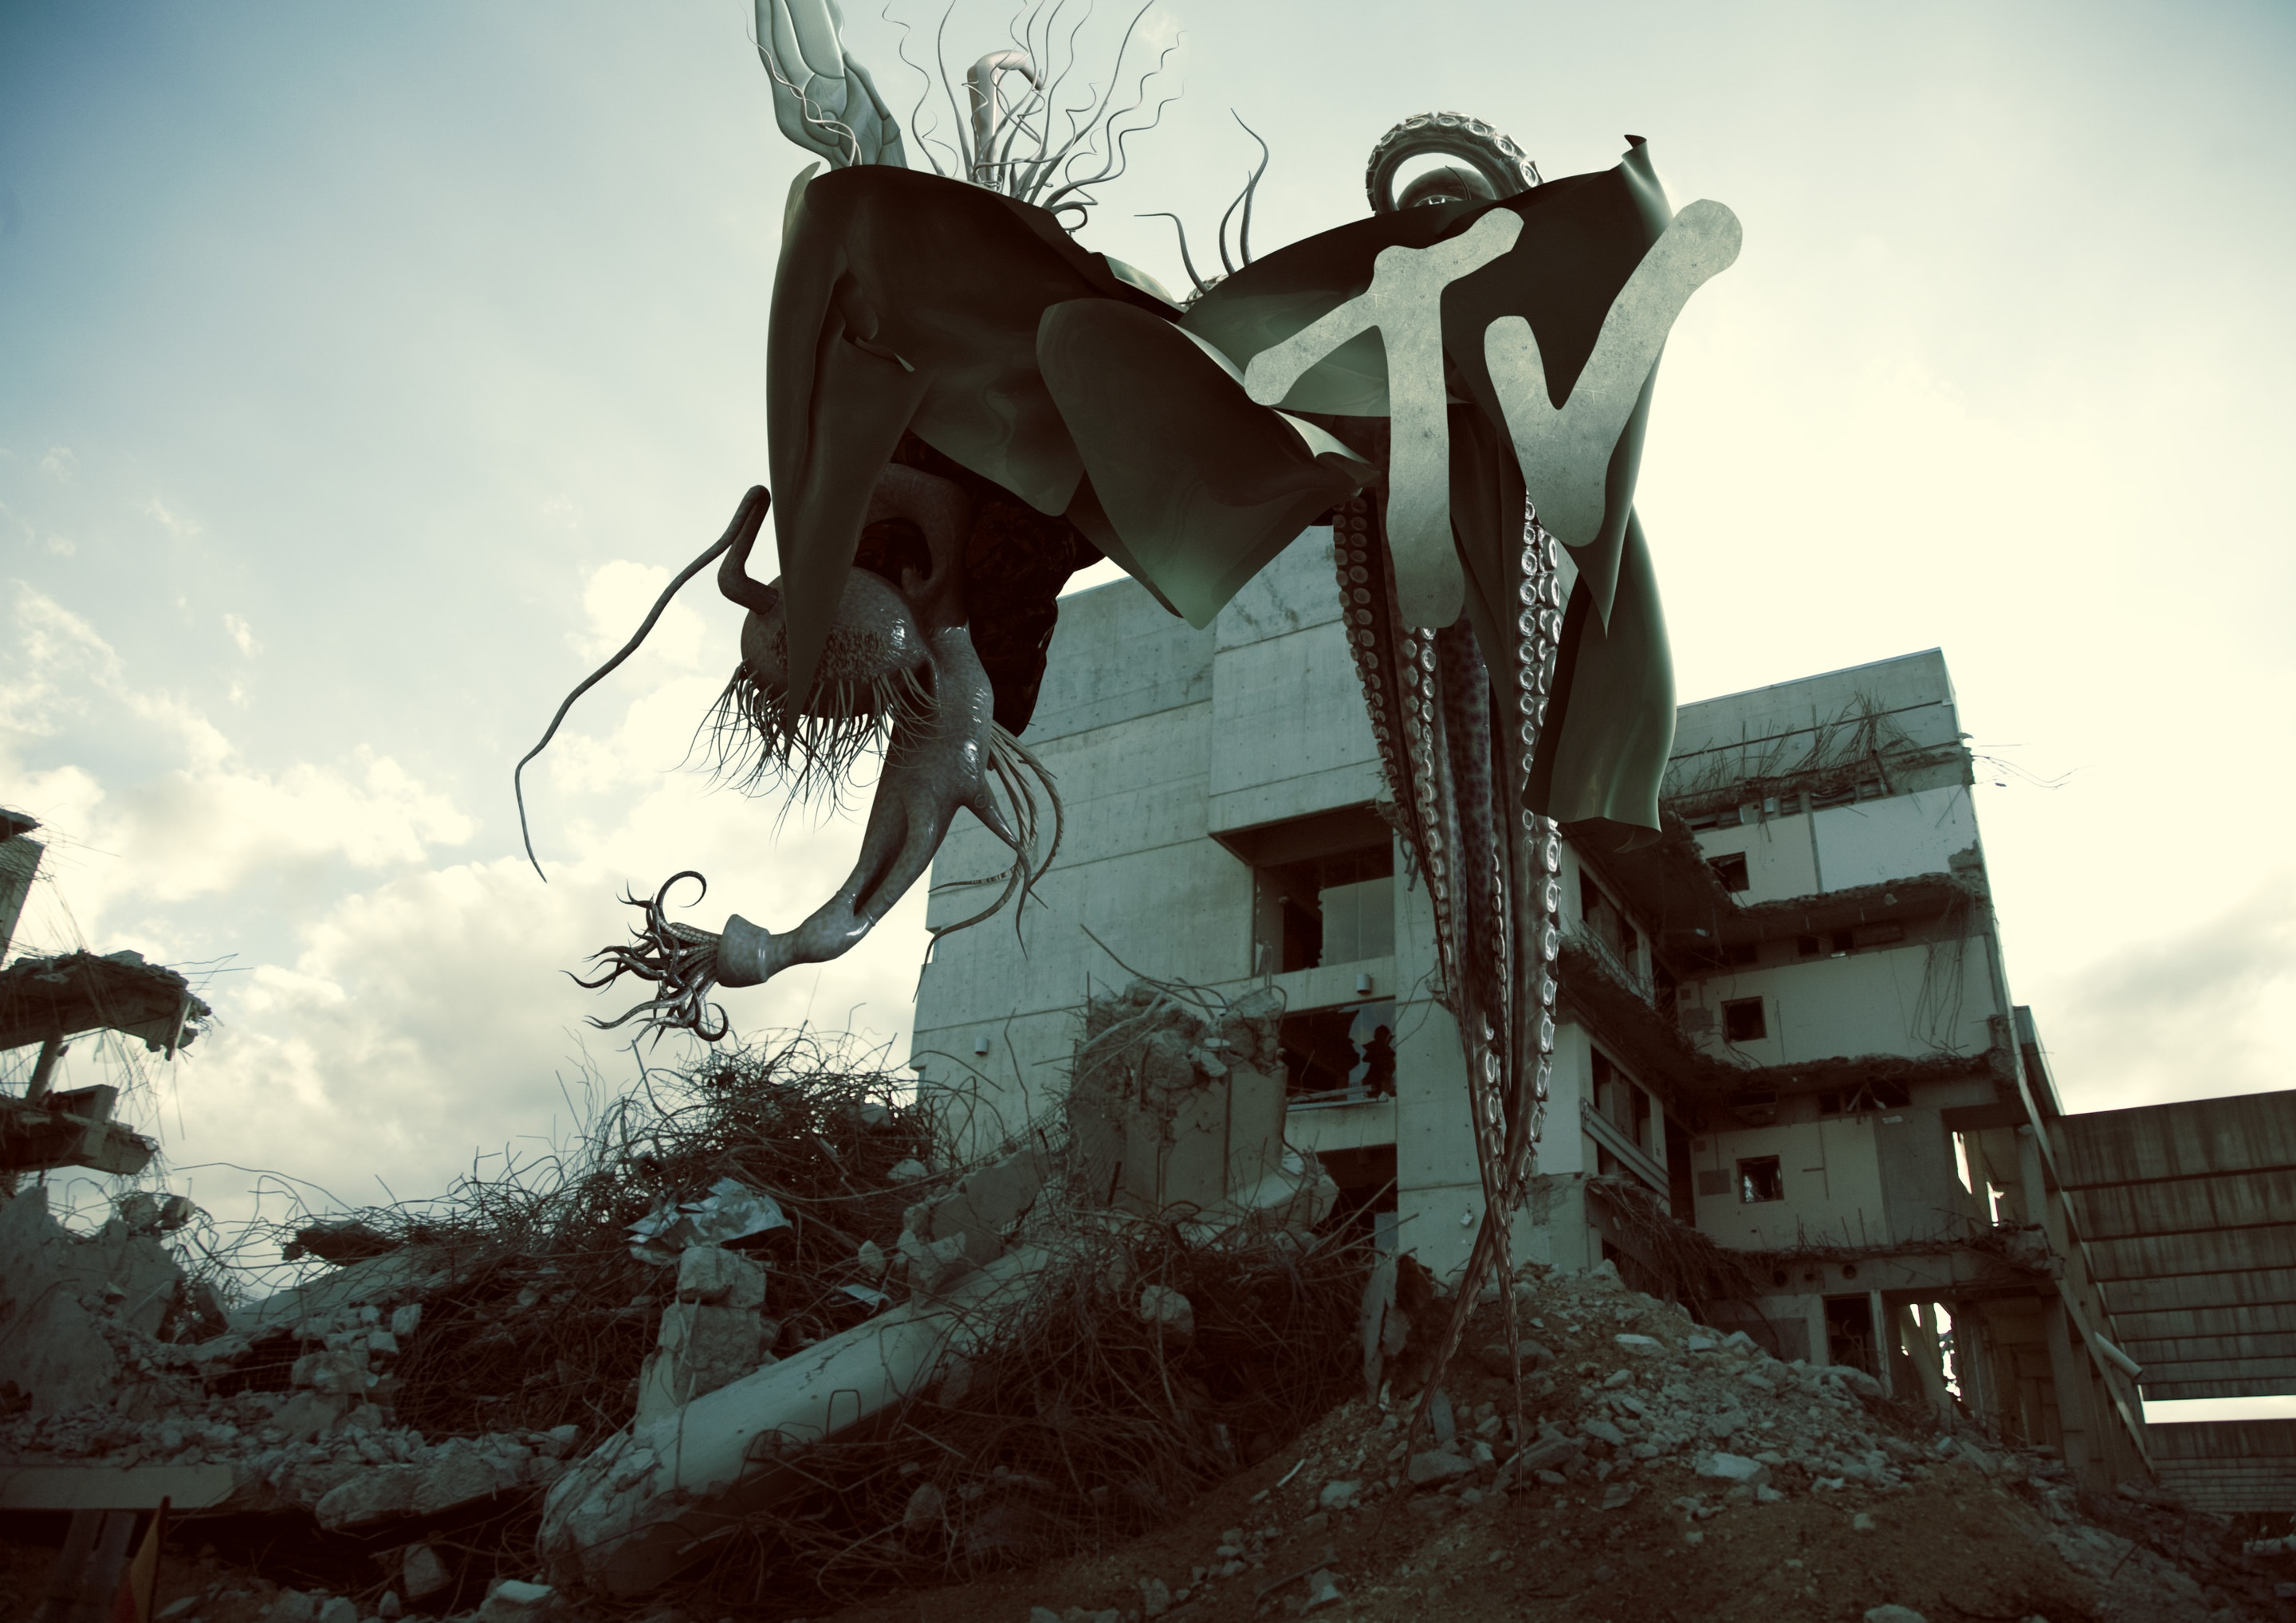 The Work of Director Ash Bolland - mtv_D_ORG_BUILDINGS_A3